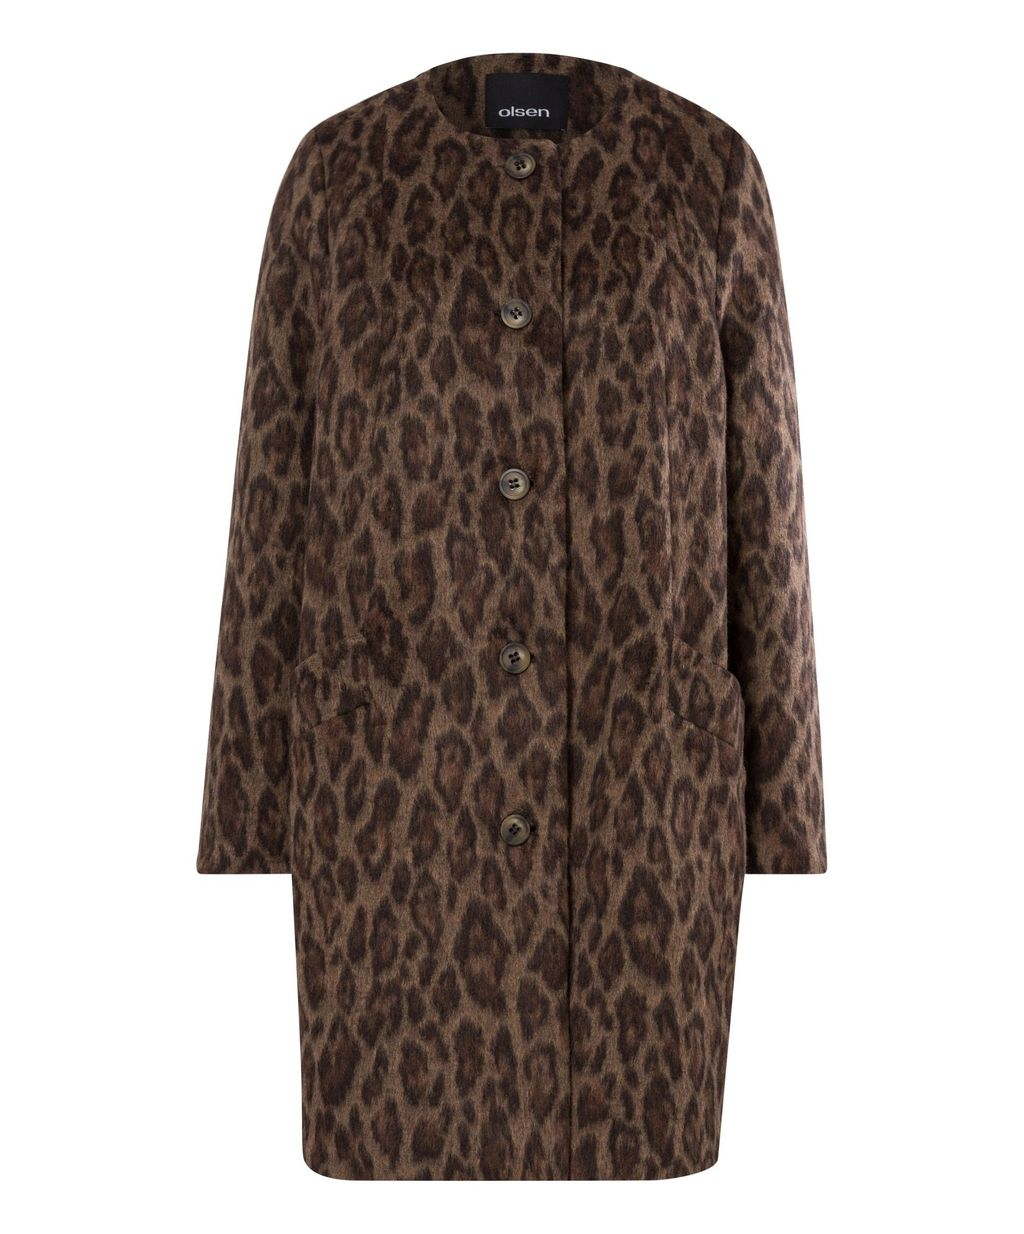 Animal Print Coat, Beige - collar: round collar/collarless; style: single breasted; length: mid thigh; predominant colour: chocolate brown; secondary colour: taupe; occasions: casual, creative work; fit: straight cut (boxy); fibres: wool - mix; sleeve length: long sleeve; sleeve style: standard; collar break: high; pattern type: fabric; pattern: animal print; texture group: woven bulky/heavy; season: a/w 2016; wardrobe: highlight; trends: opulent prints